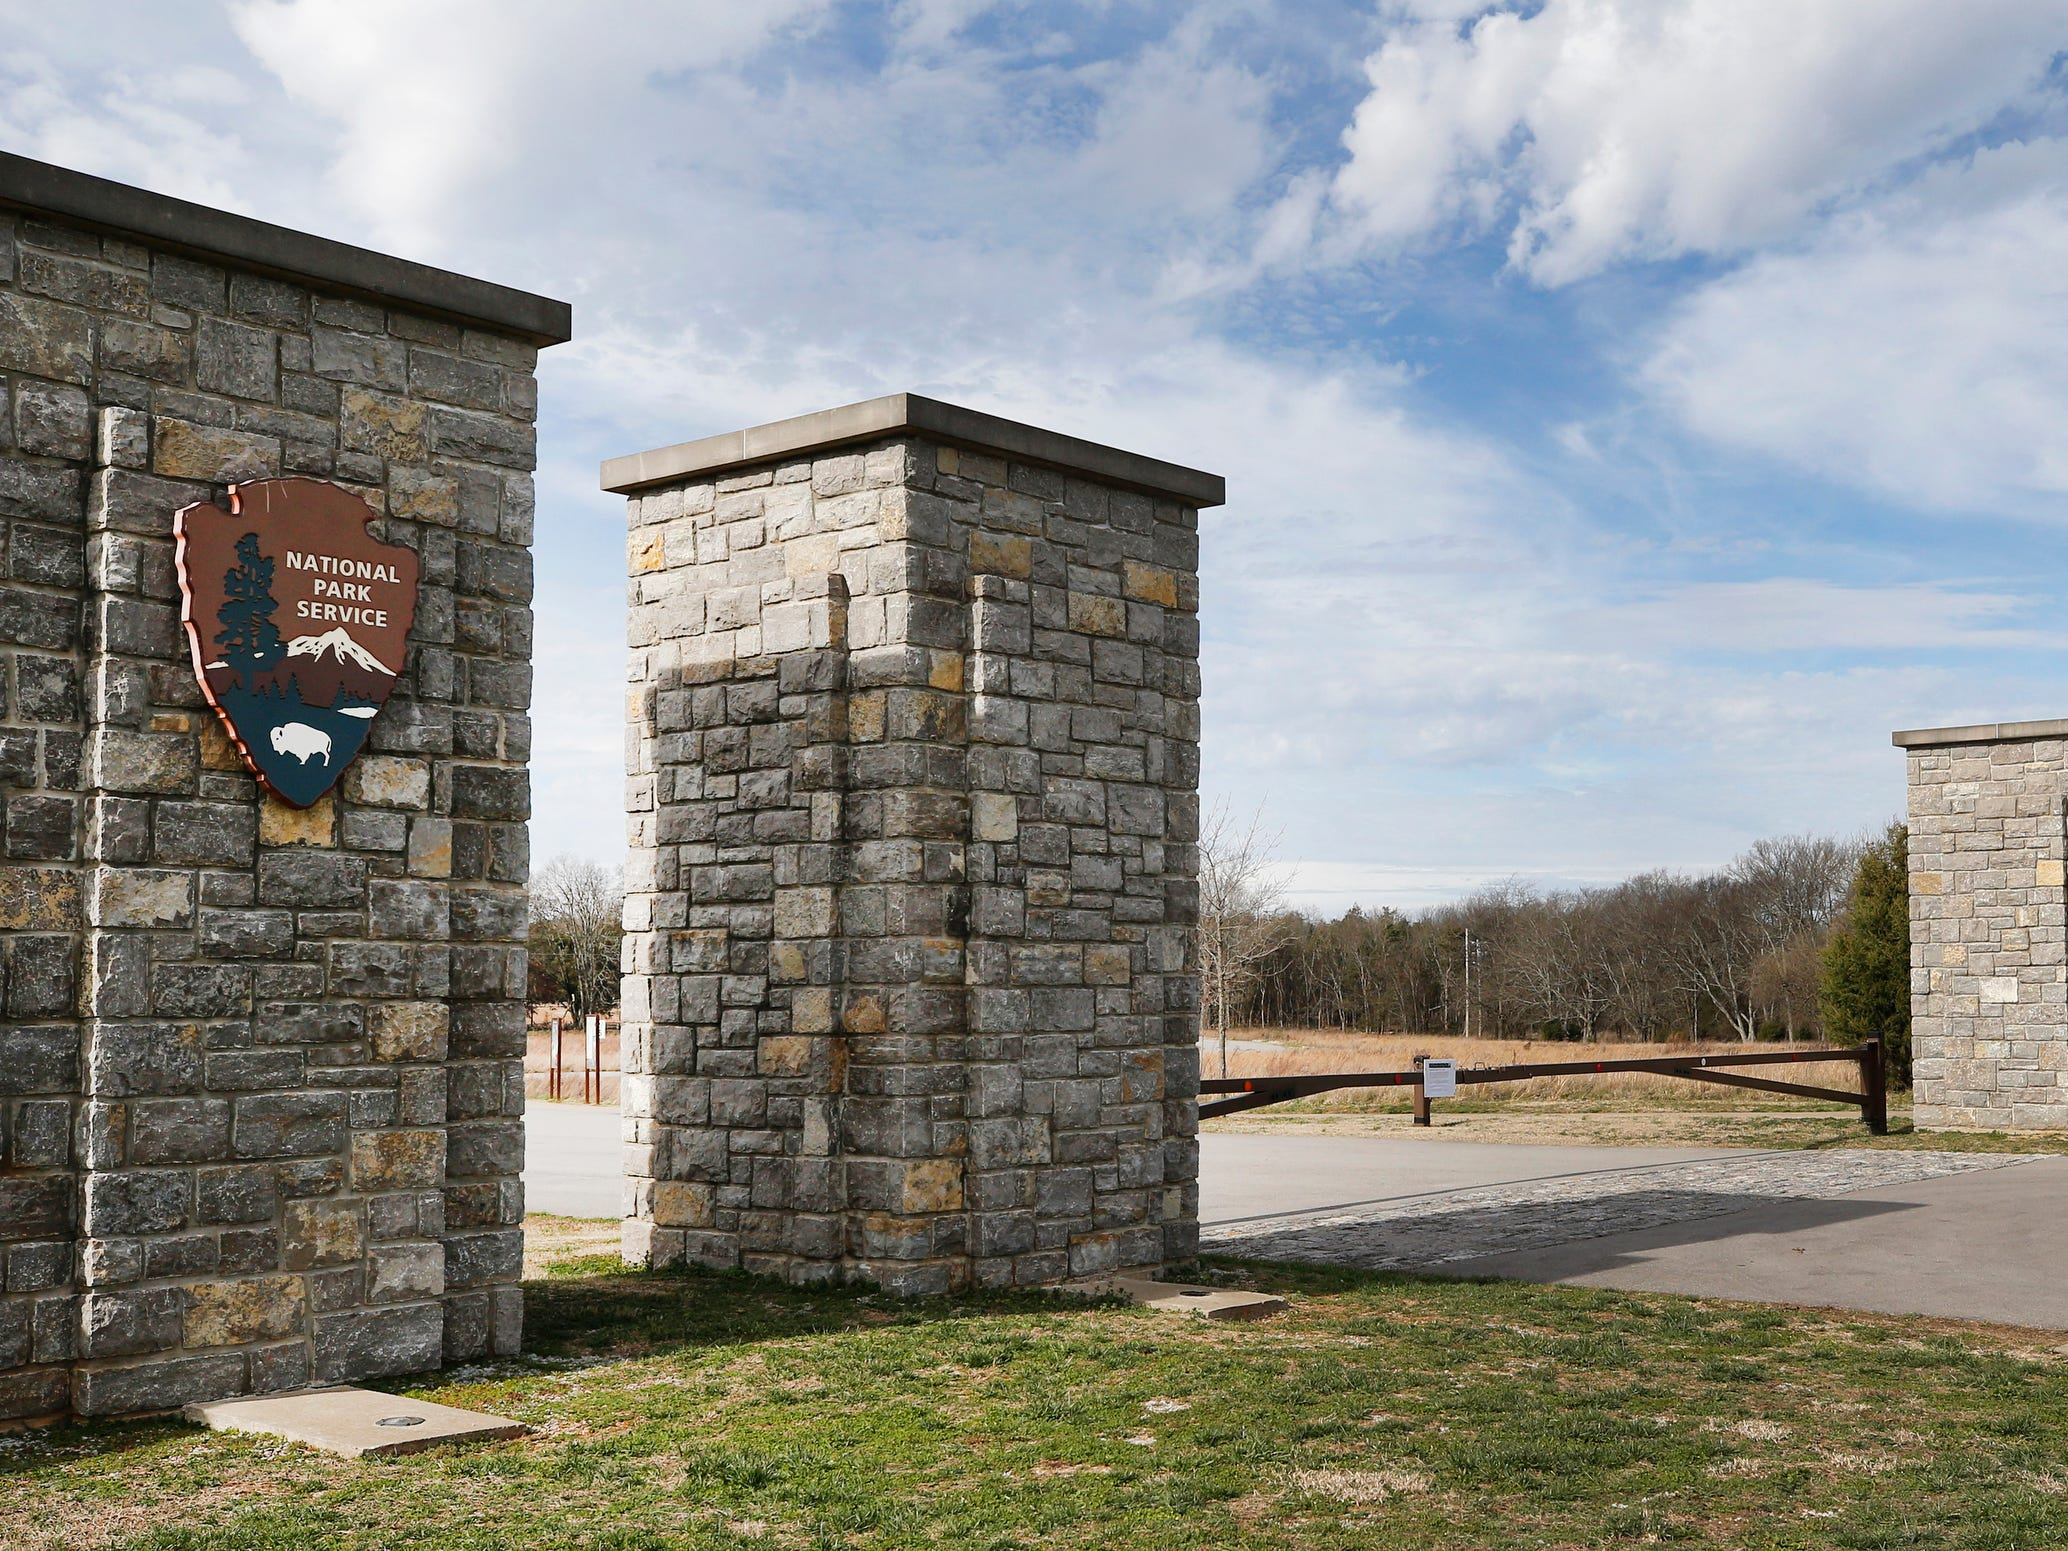 The Stones River National Battlefield is still closed on Thursday Jan. 7, 2019, after the government shutdown on Dec. 22, 2018.